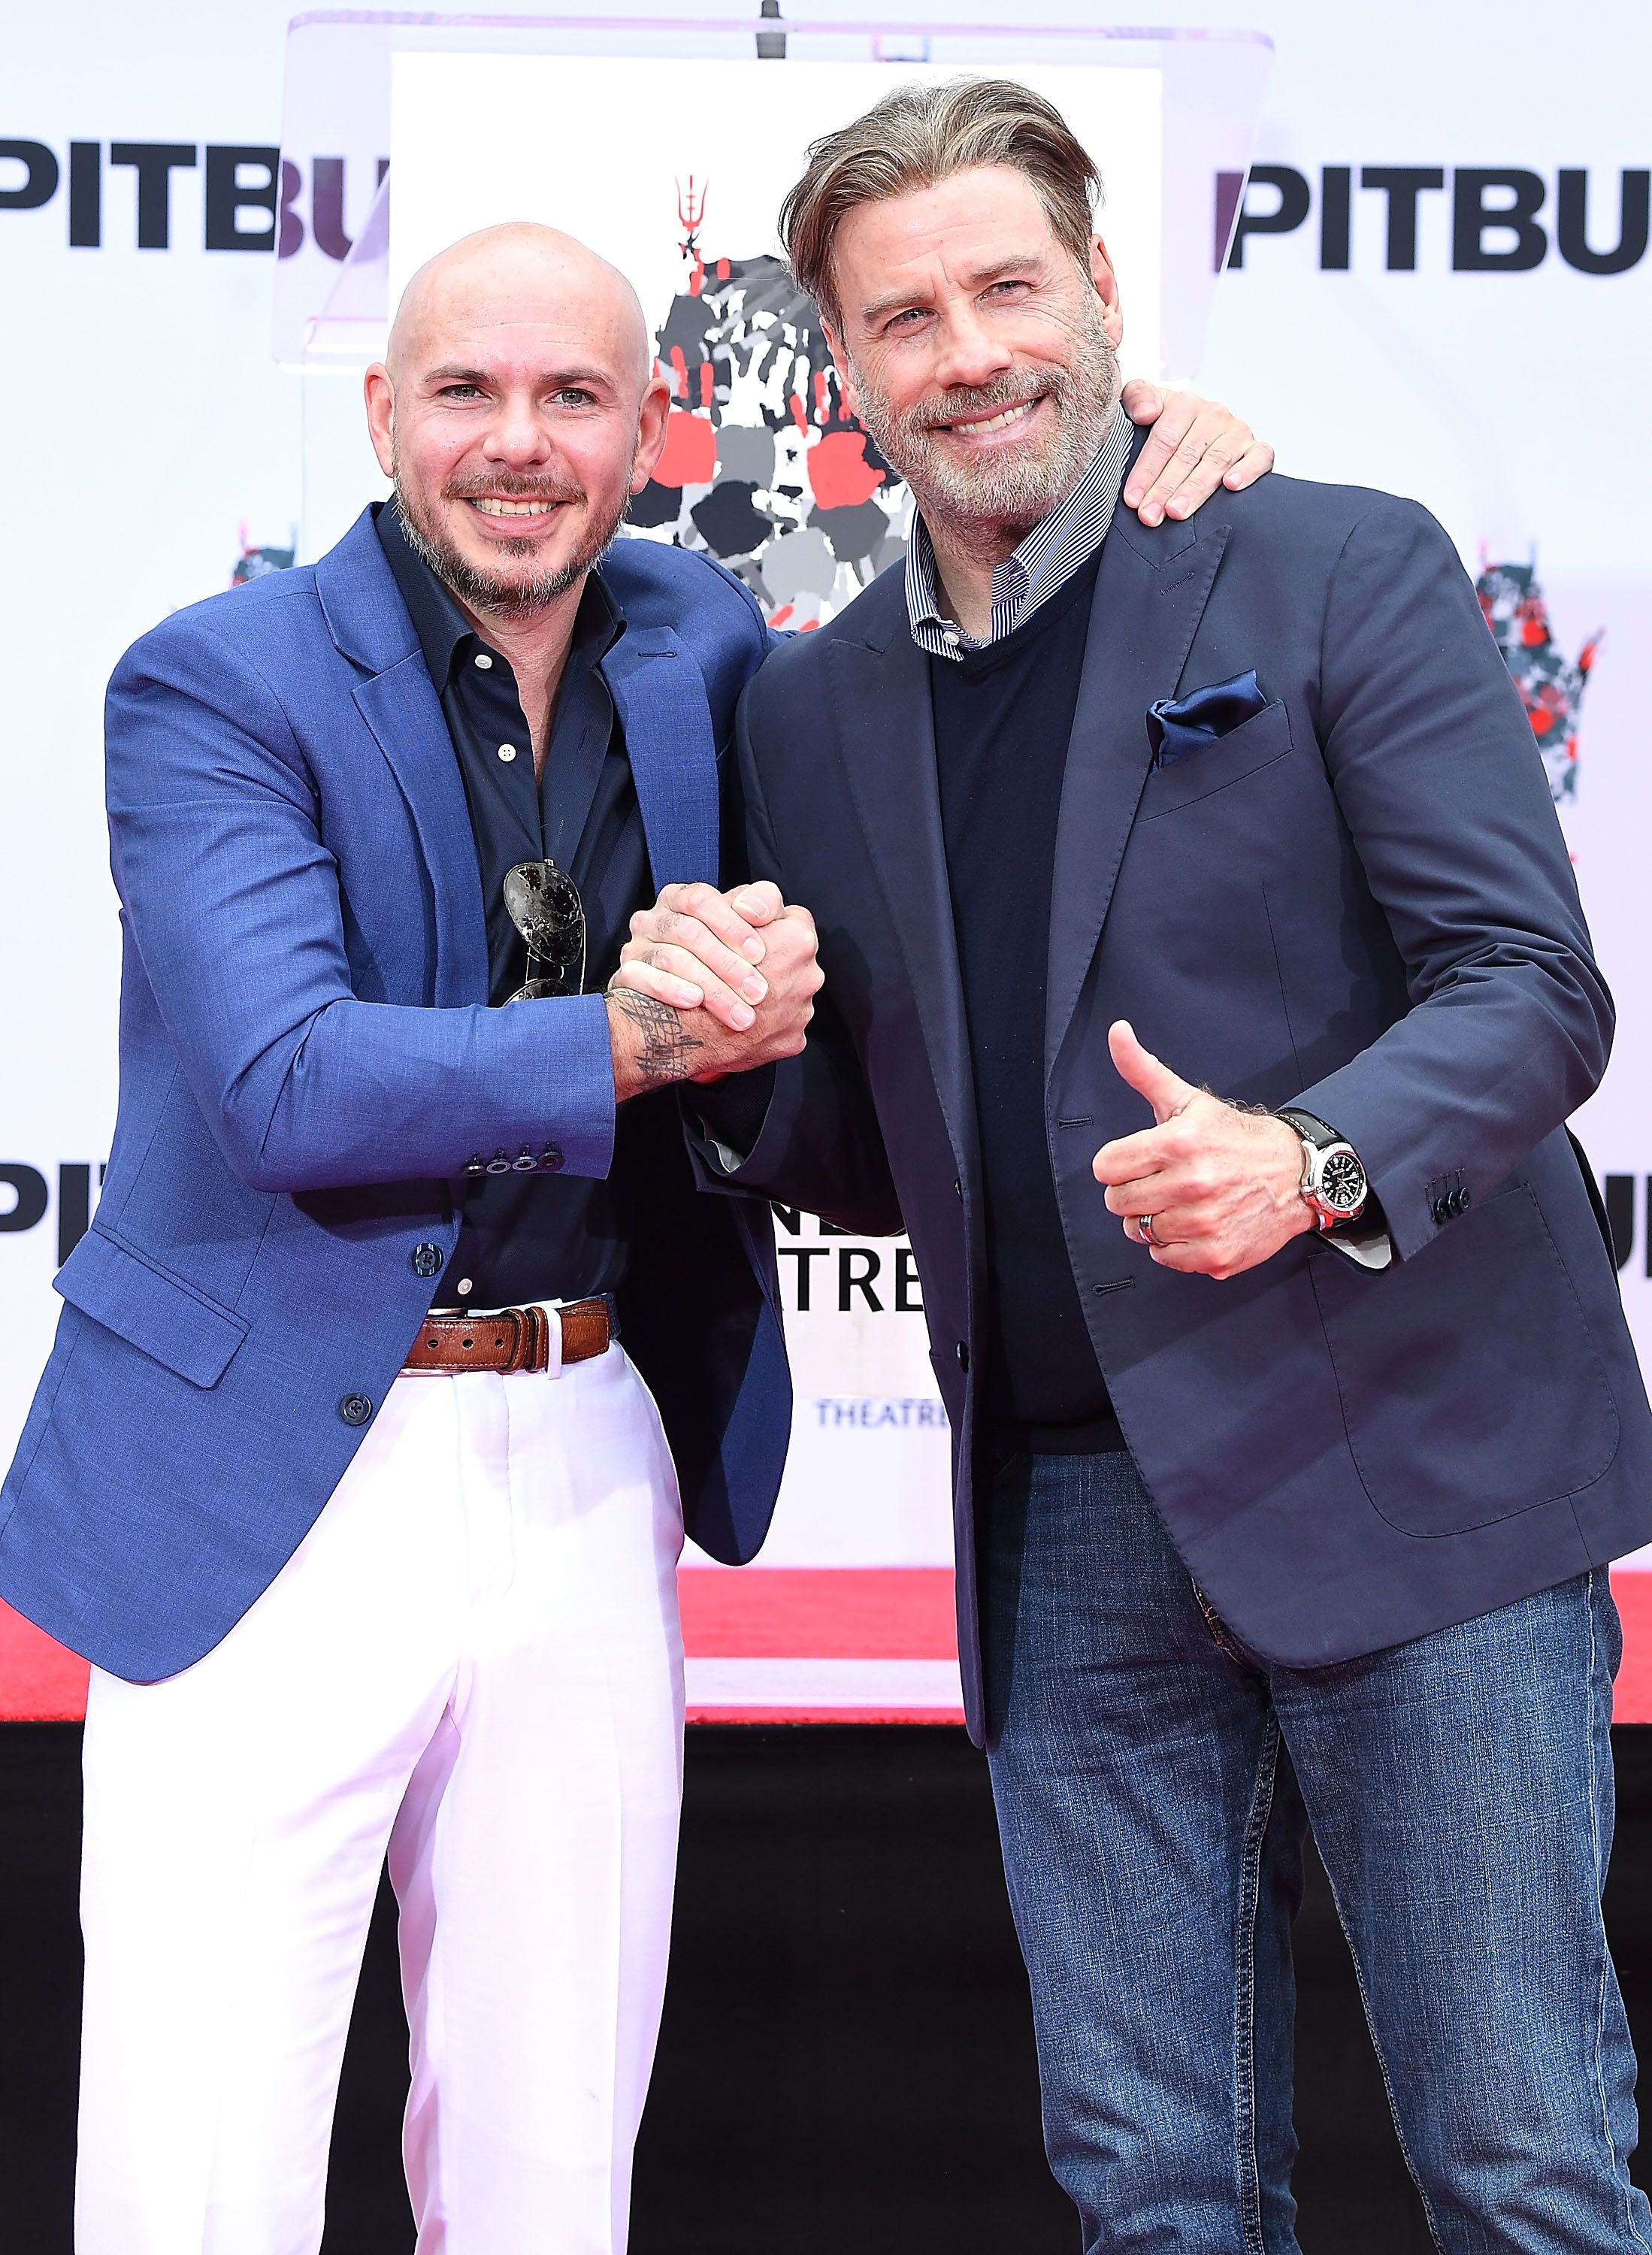 Pitbull and John Travolta at the TCL Chinese Theatre on December 14, 2018 in Hollywood, California.